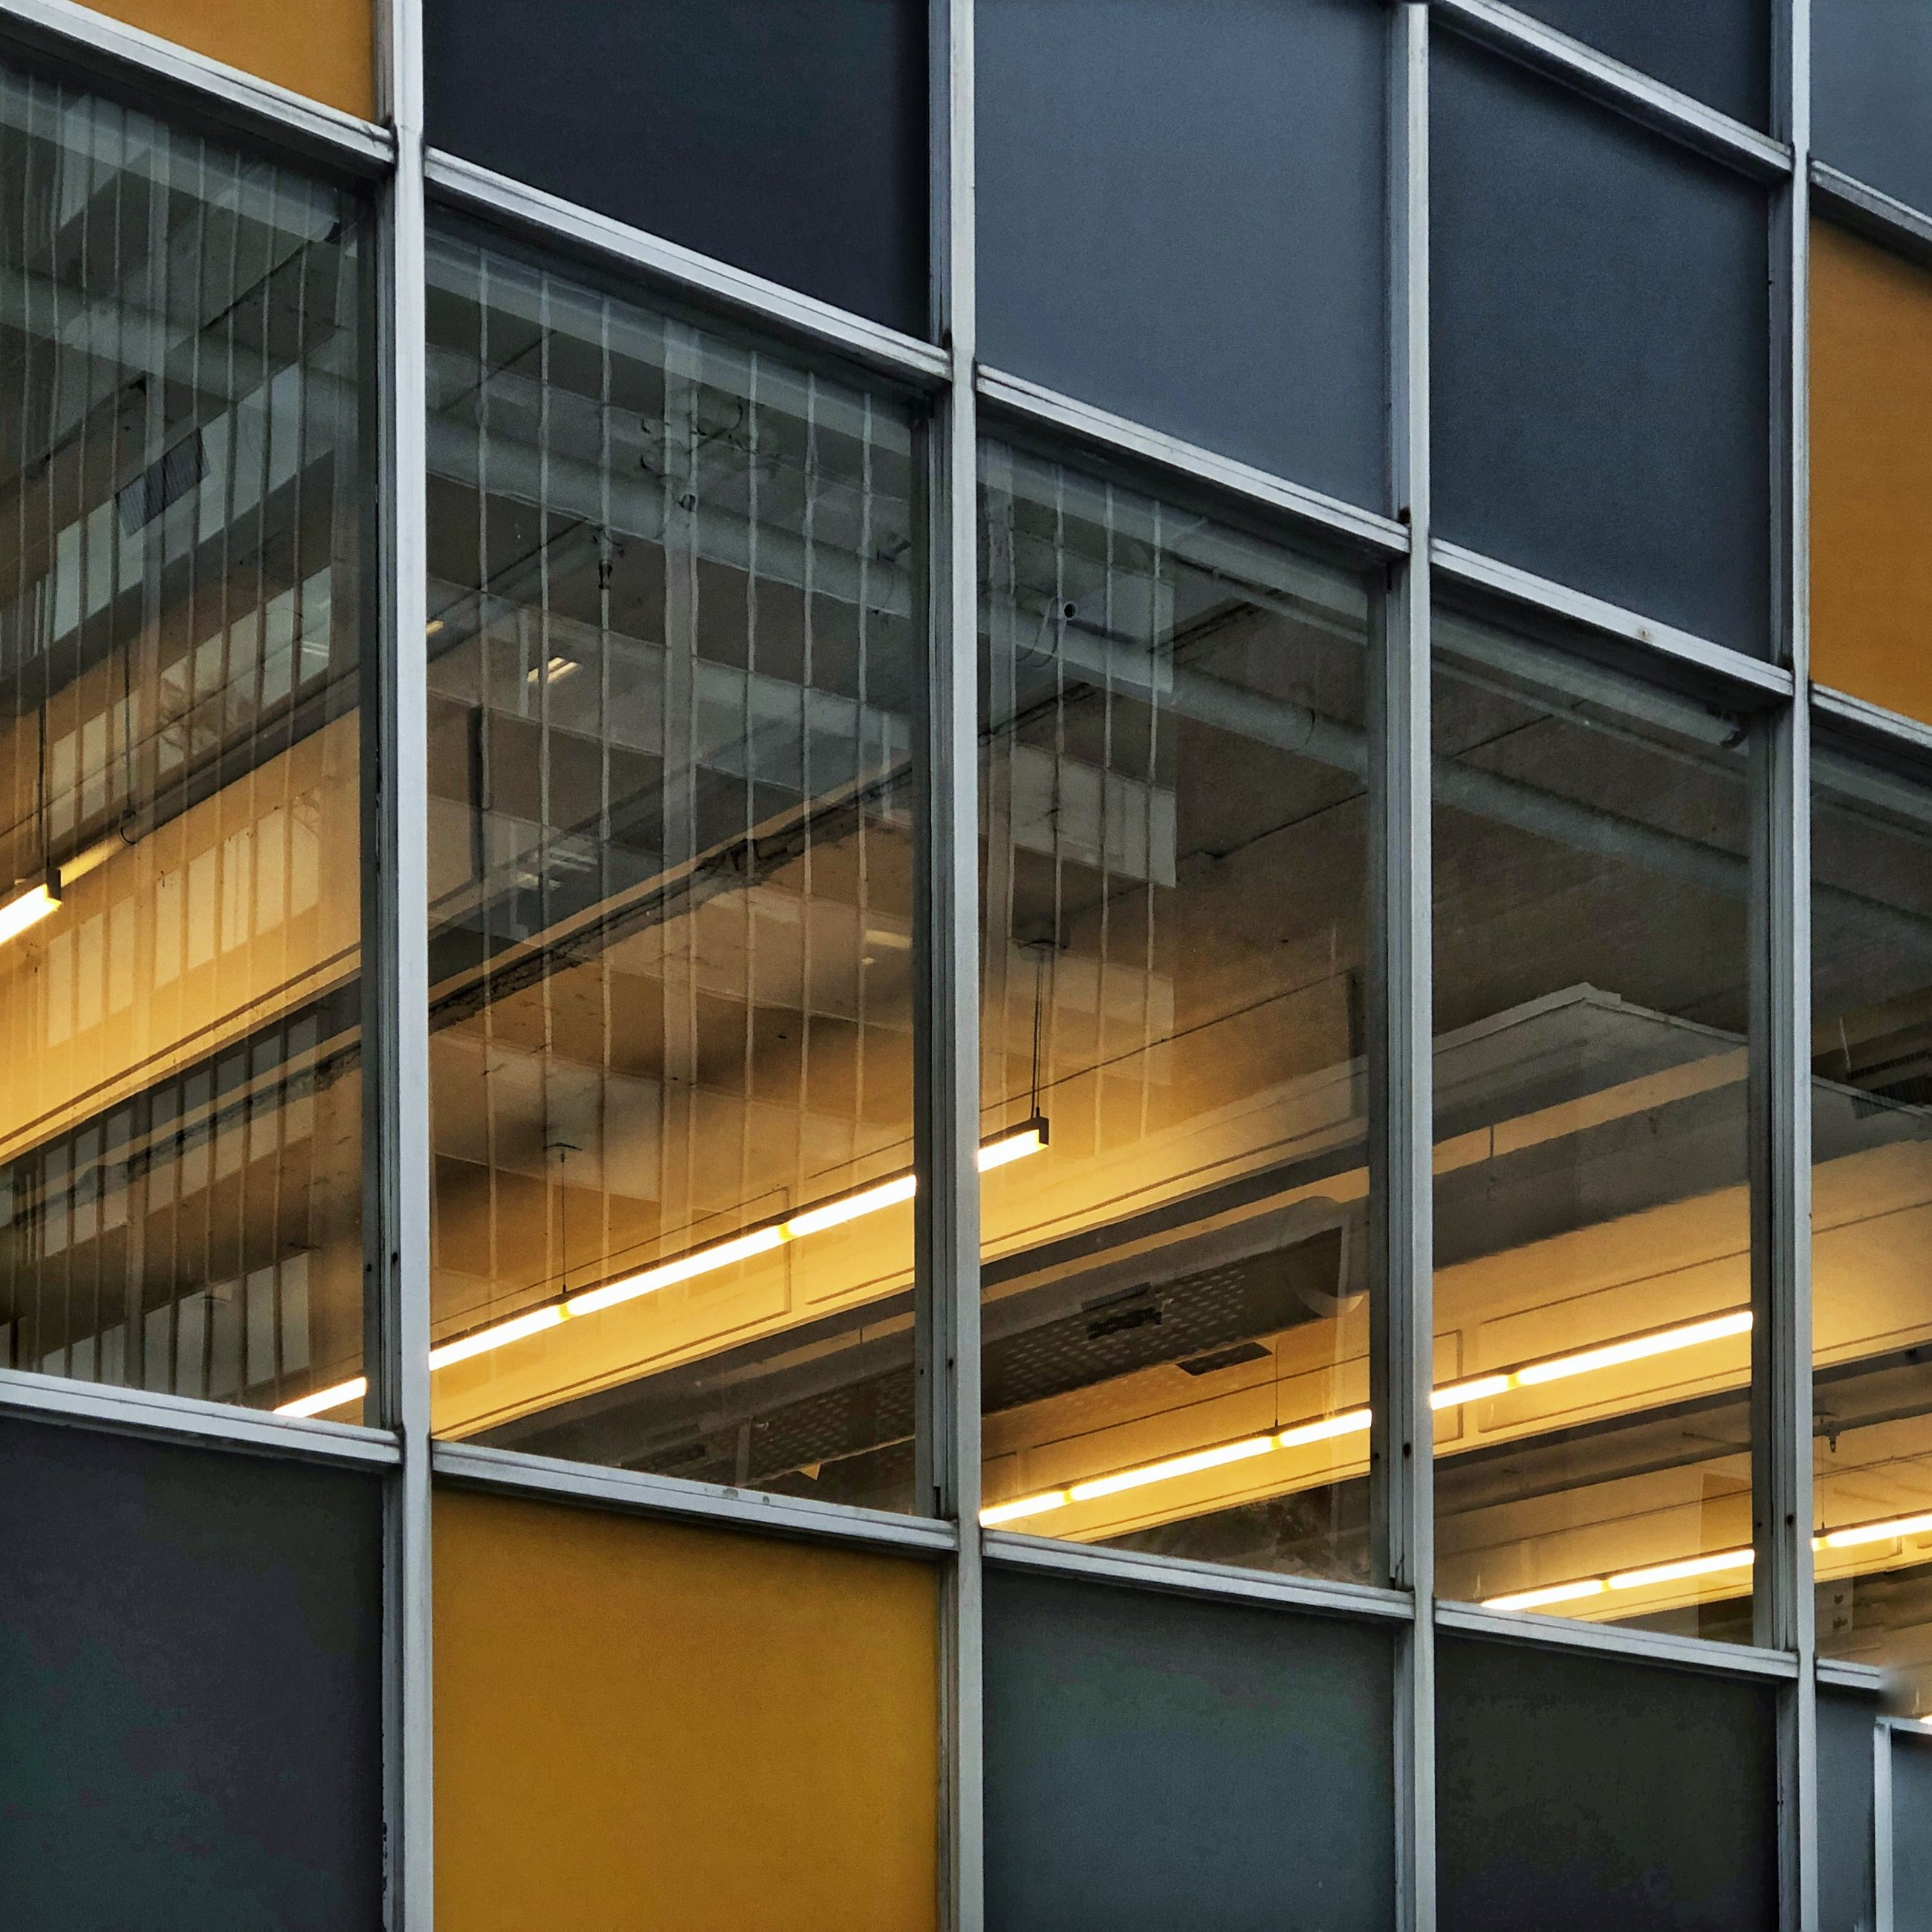 built structure, building exterior, architecture, glass - material, window, reflection, no people, building, transparent, full frame, modern, outdoors, backgrounds, yellow, city, day, office, pattern, low angle view, office building exterior